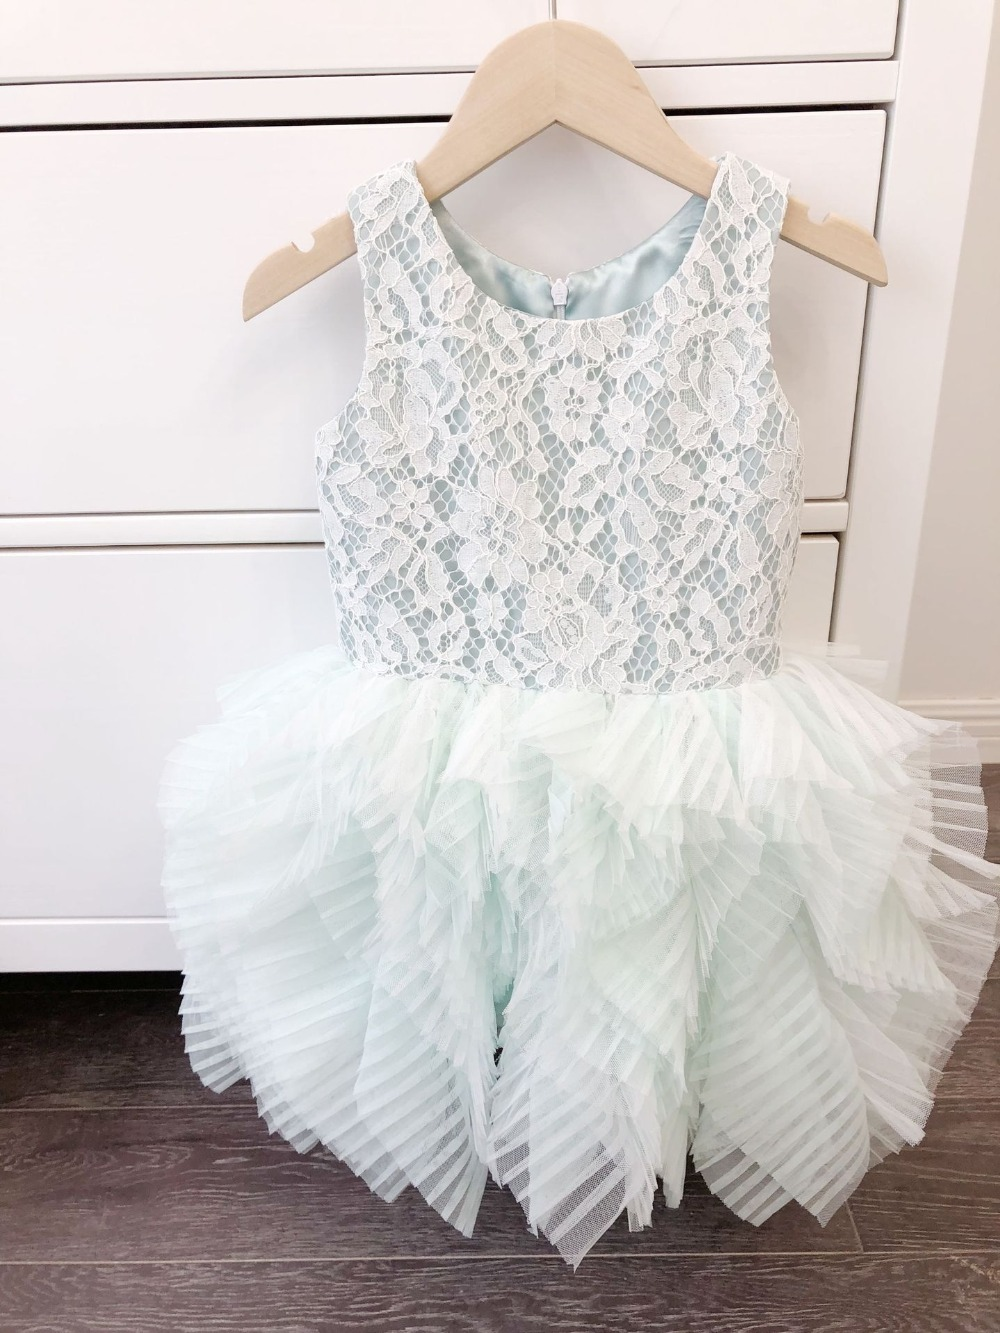 kids dresses for girls baby clothes girl lace flower summer princess dresses high quality tutu dress girls party dresses toddler baby girl dress beautiful lace kids tutu dresses for girls clothing children s princess girls party wear dresses 8 years